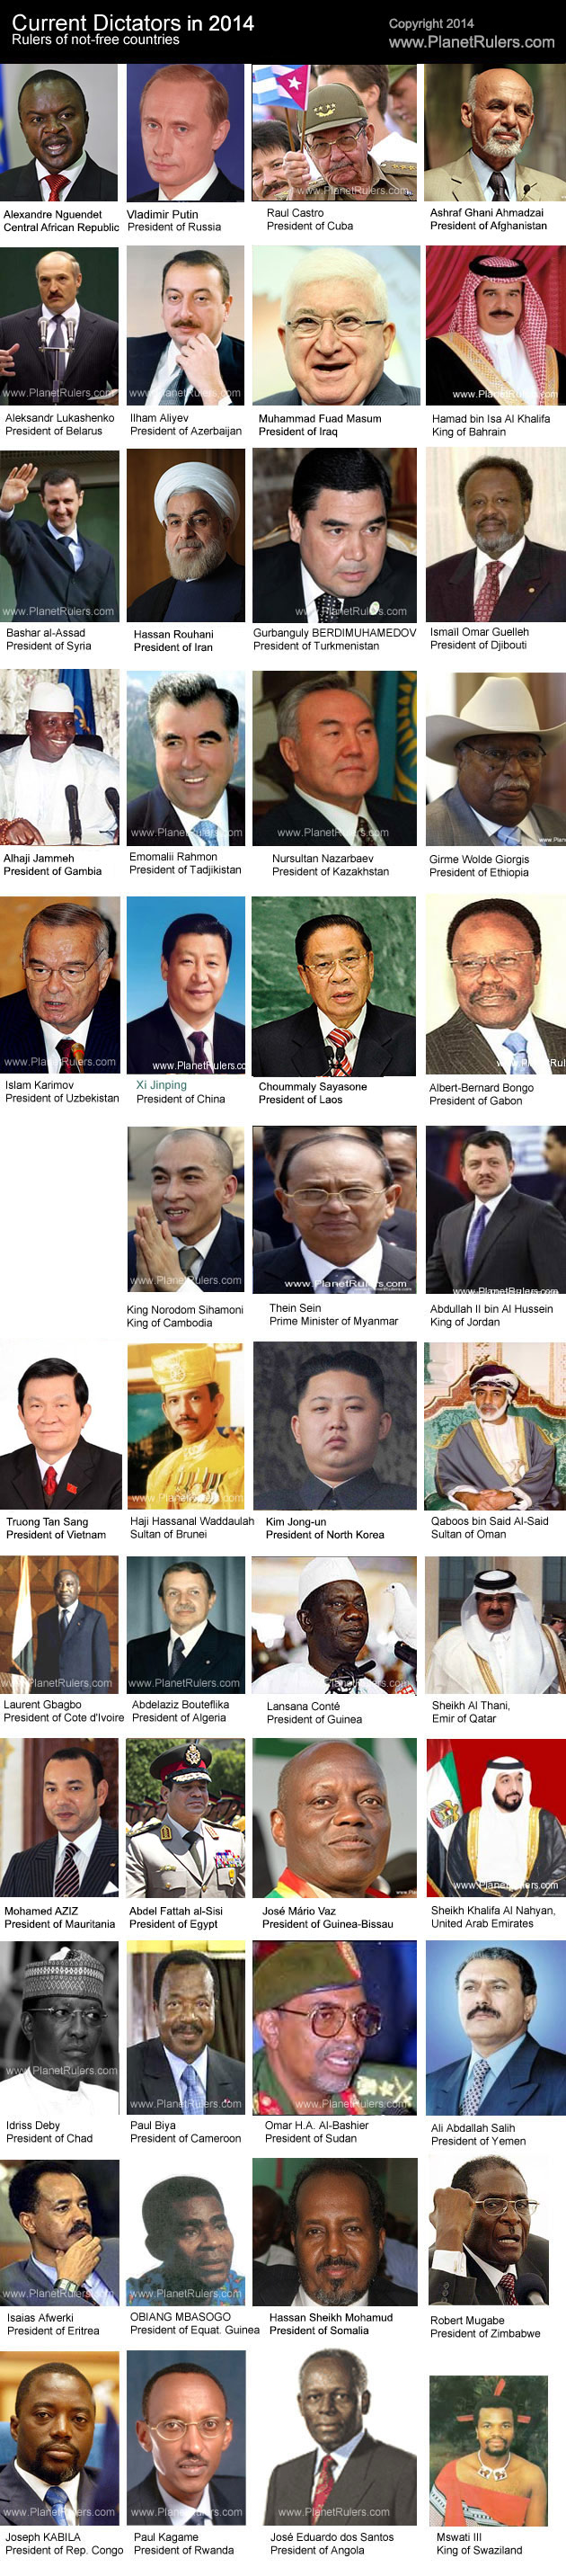 Current World Dictators